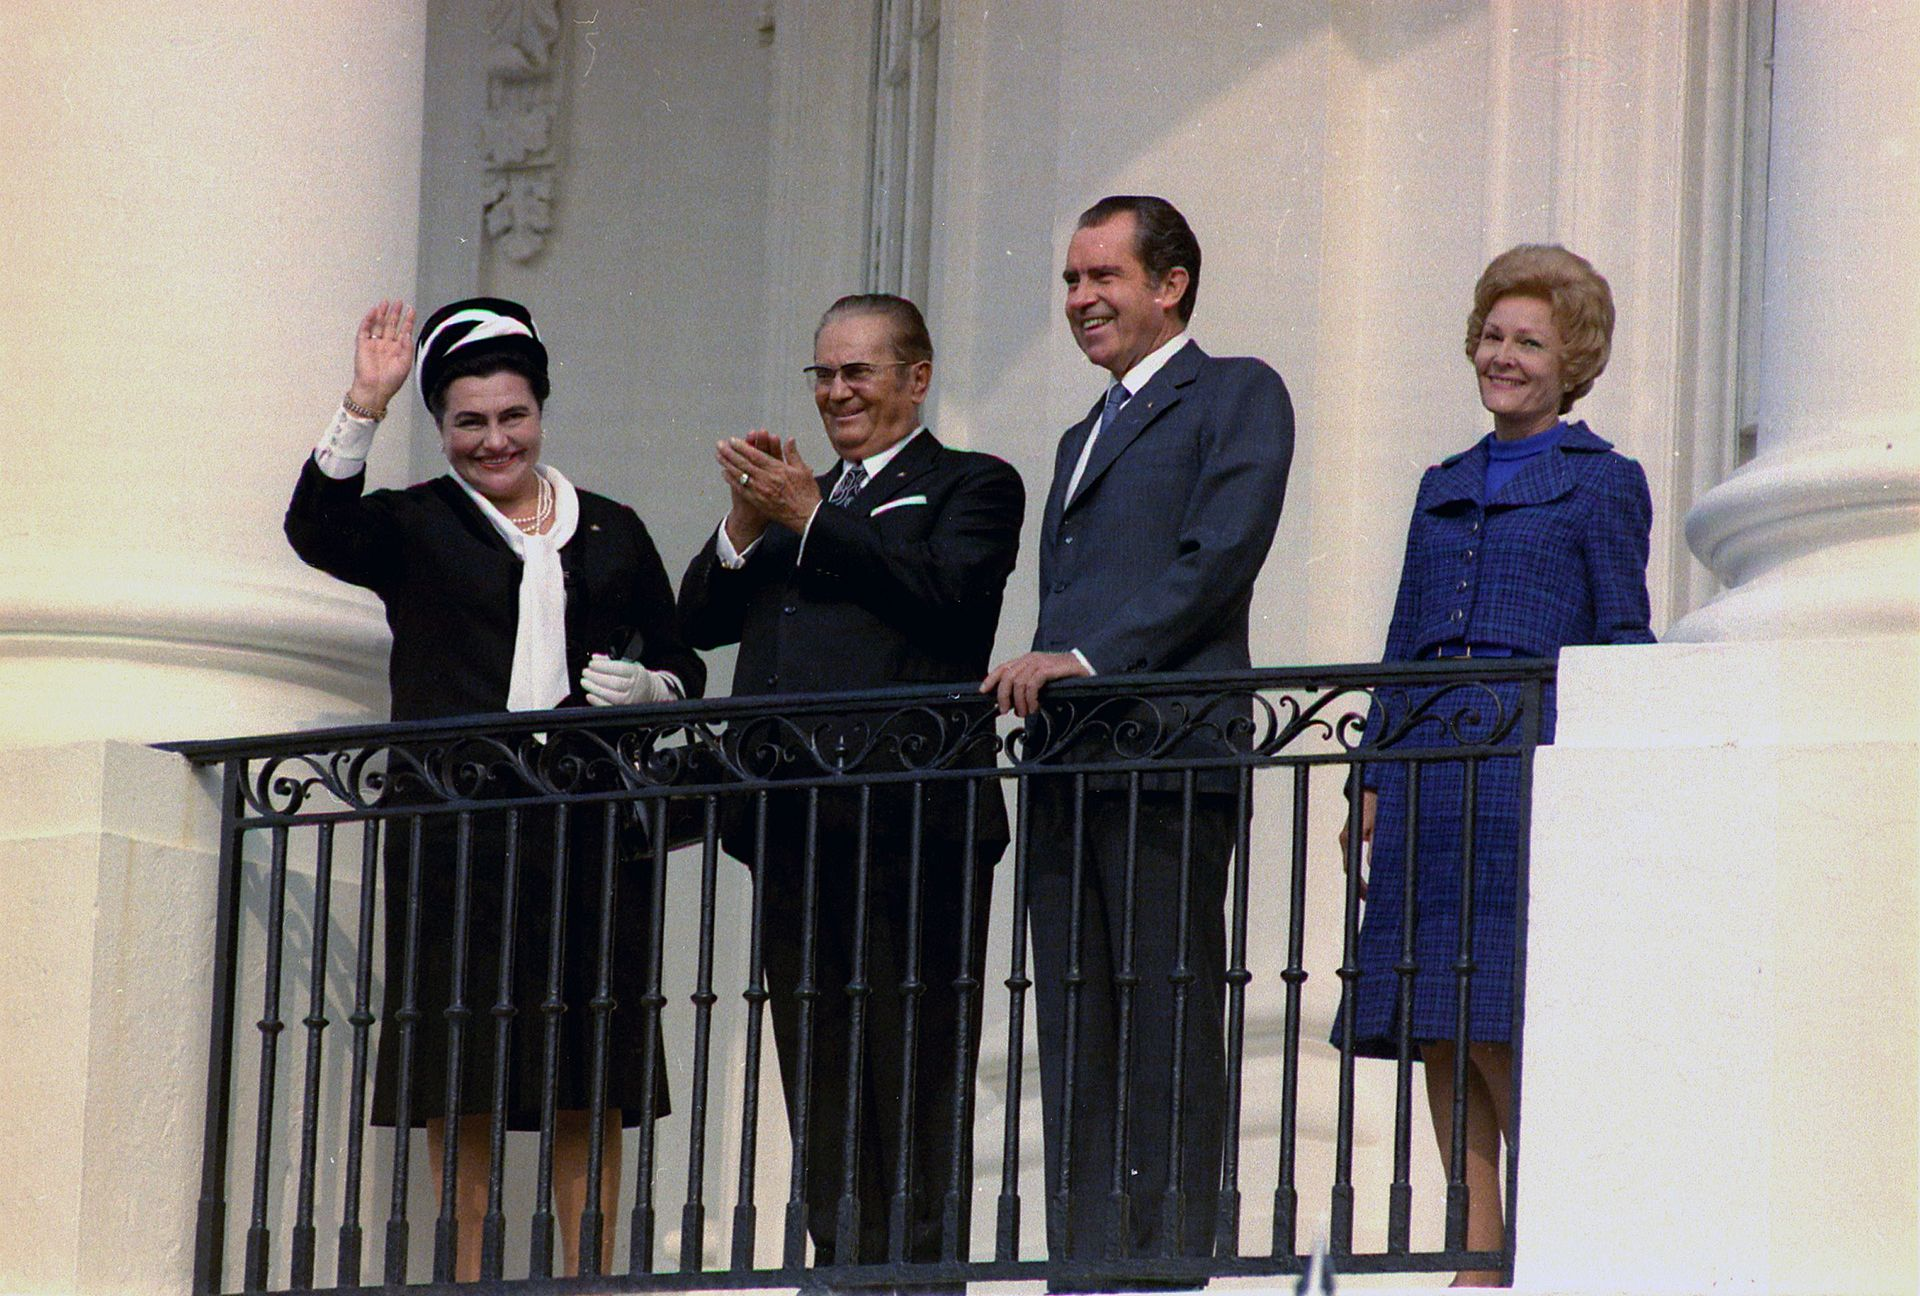 Richard Nixon with Tito at the White House, 1971